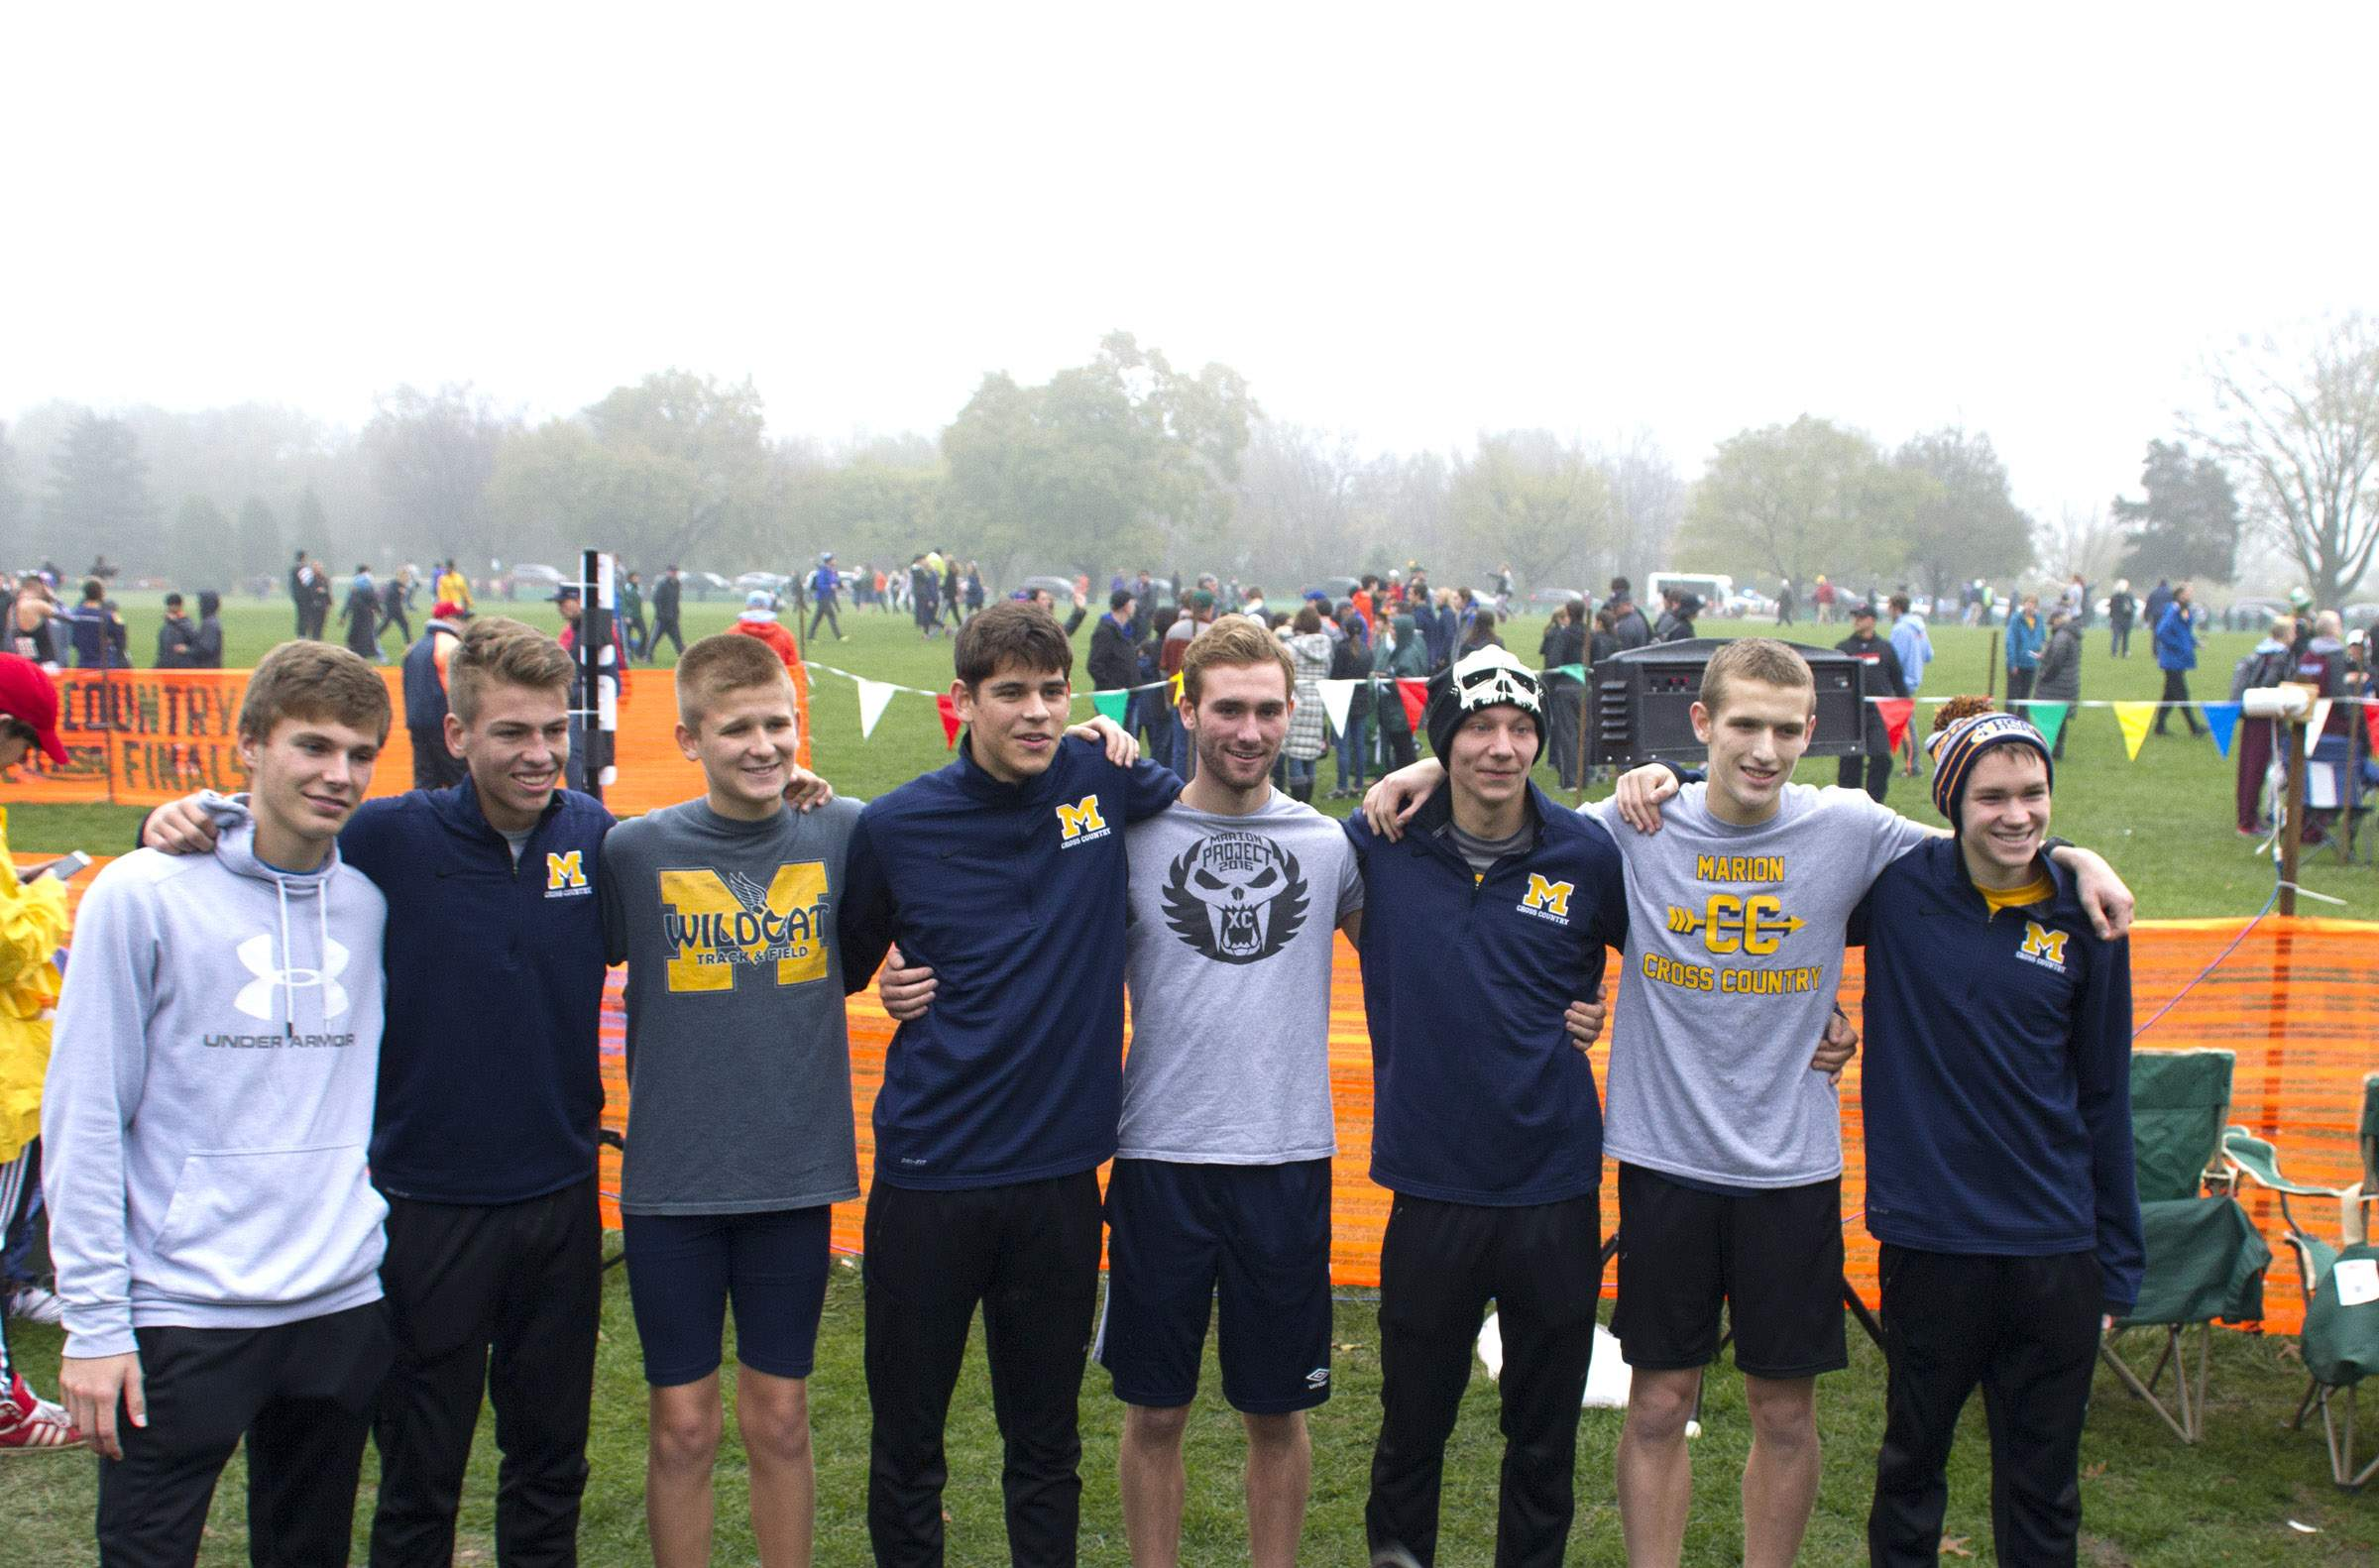 Marion's runners pose for a photo after the race.